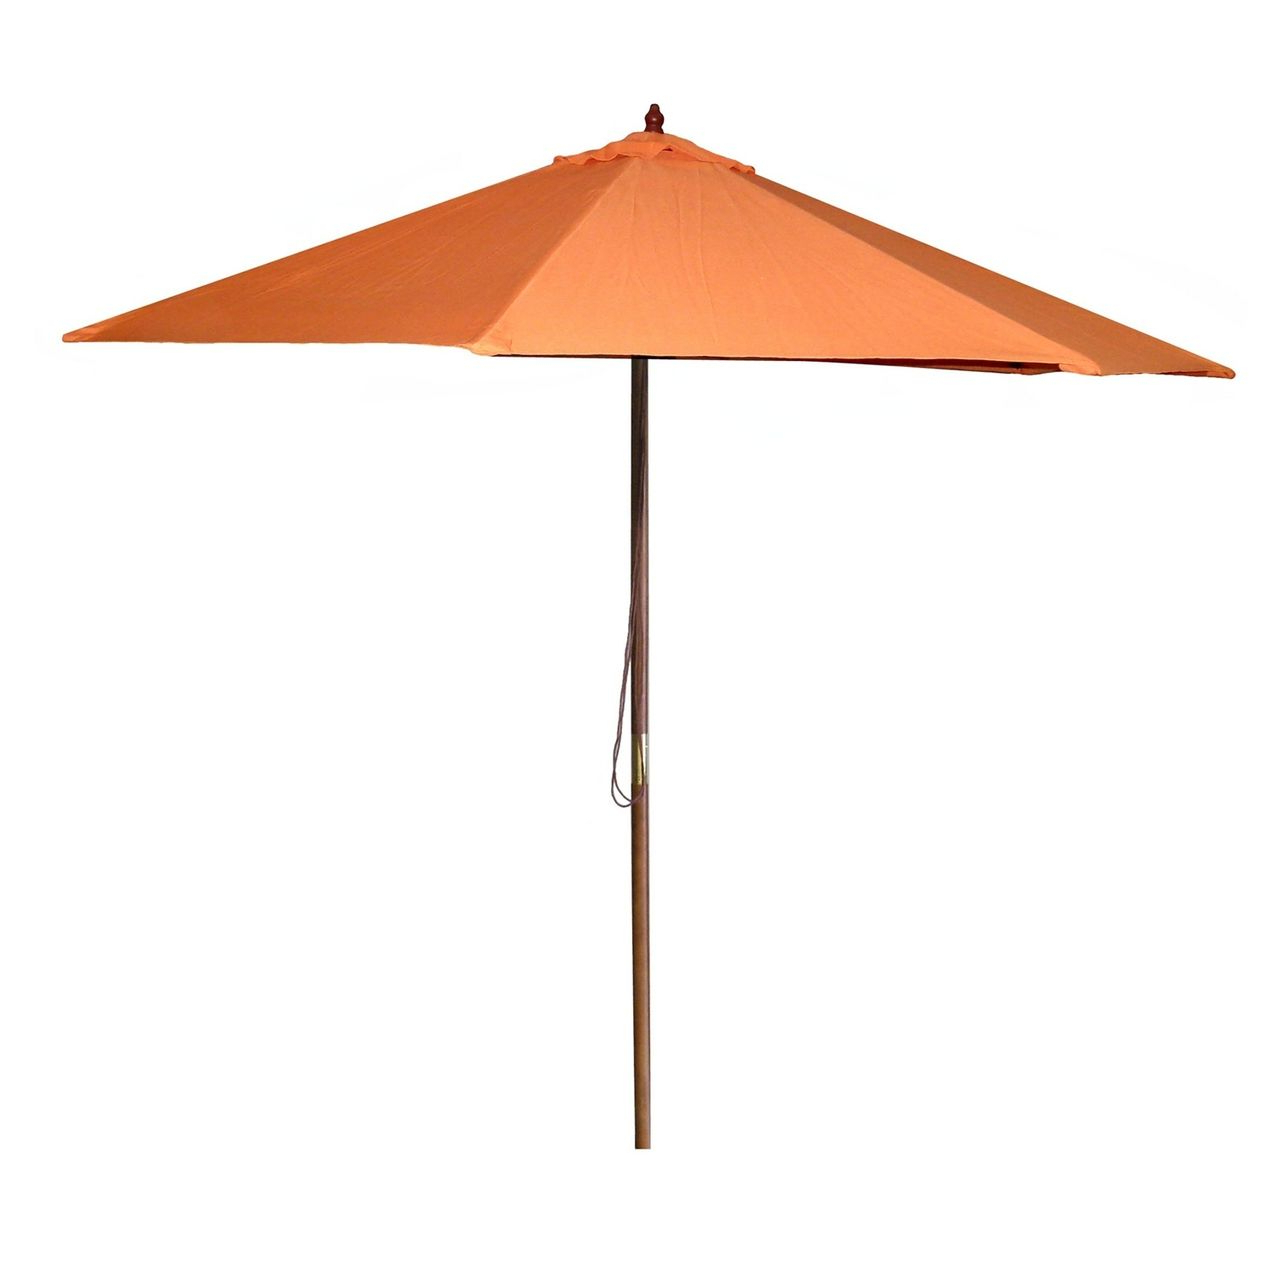 Most Recently Released 9 Ft Patio Pulley Umbrella With Wood Pole And Orange Canopy In Devansh Market Umbrellas (View 14 of 20)